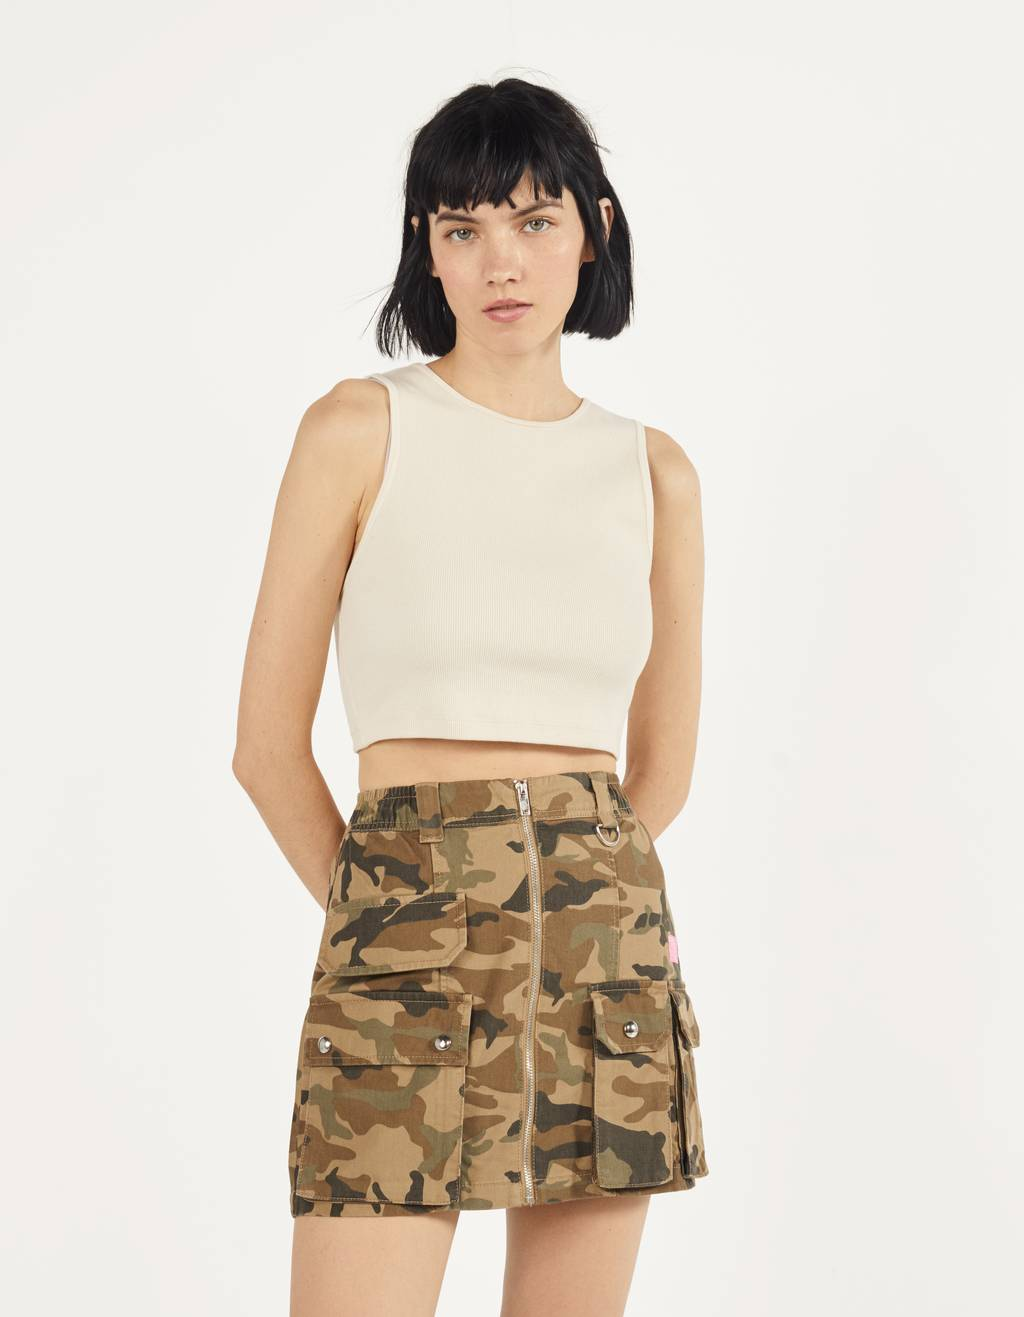 Short cargo skirt with zipper detail